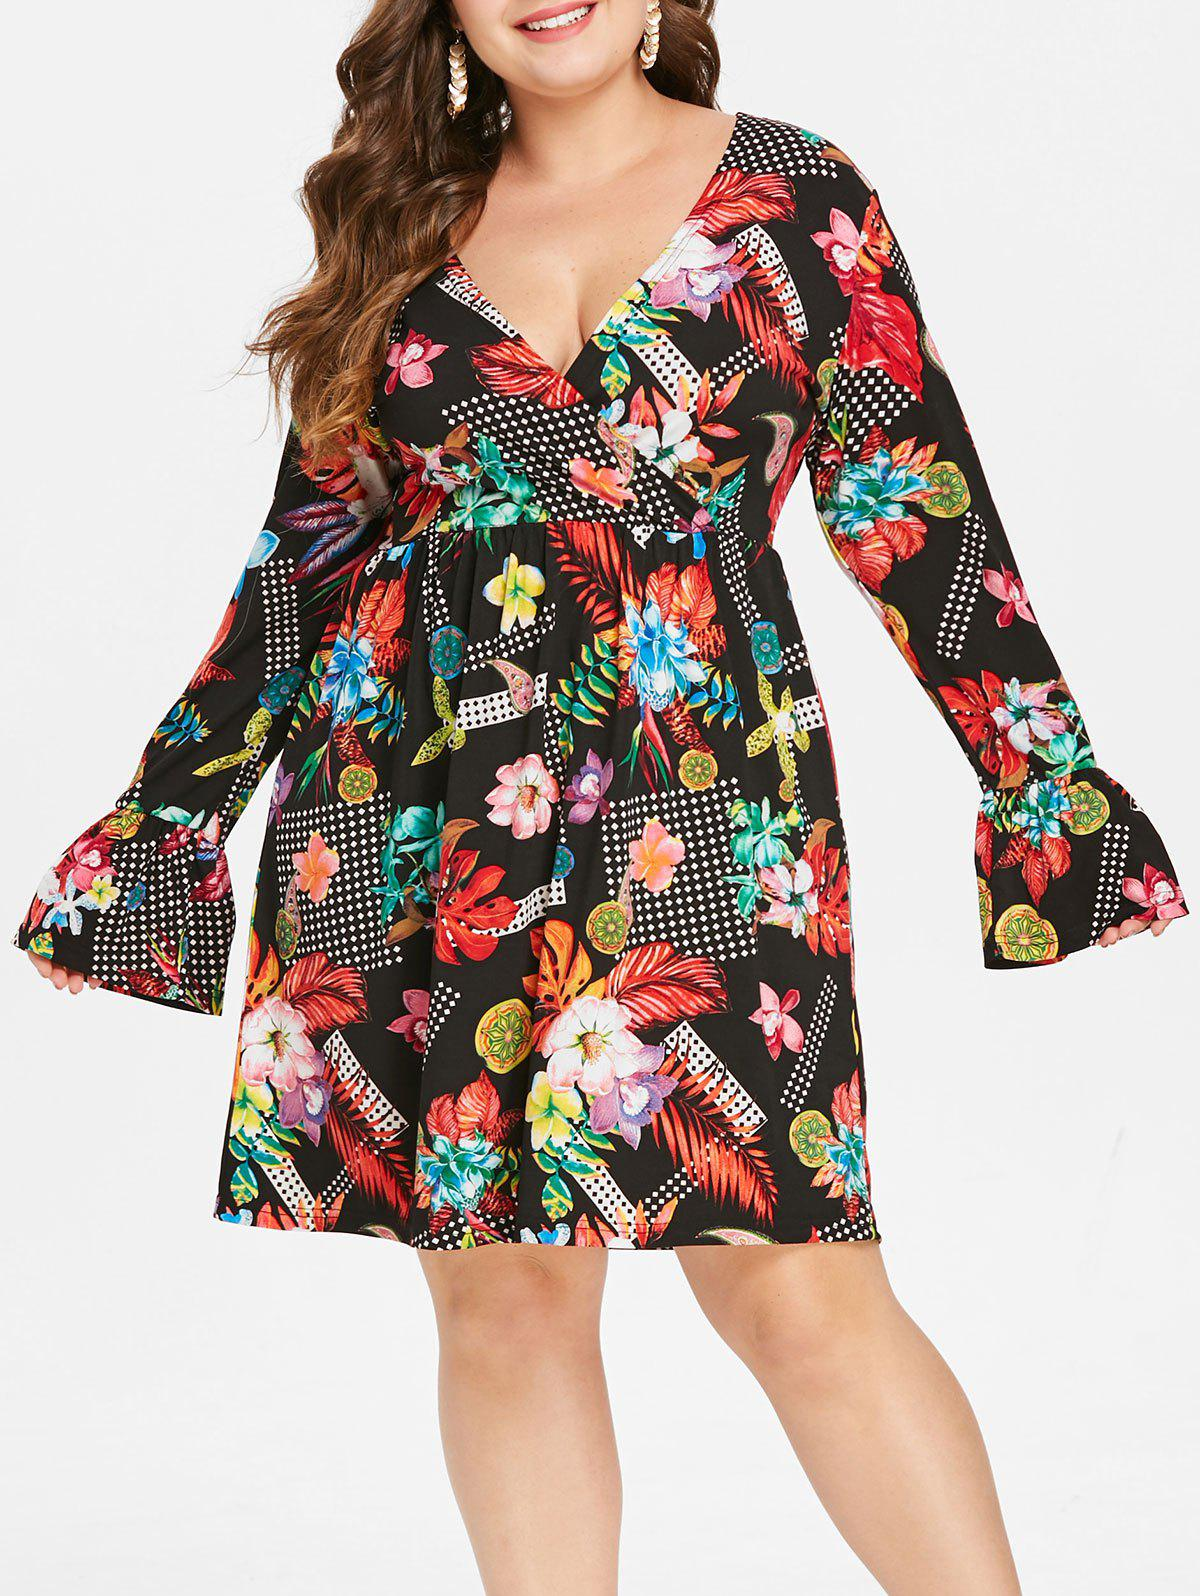 ace58f57dcd43 2019 Plus Size Bell Sleeve Floral Dress